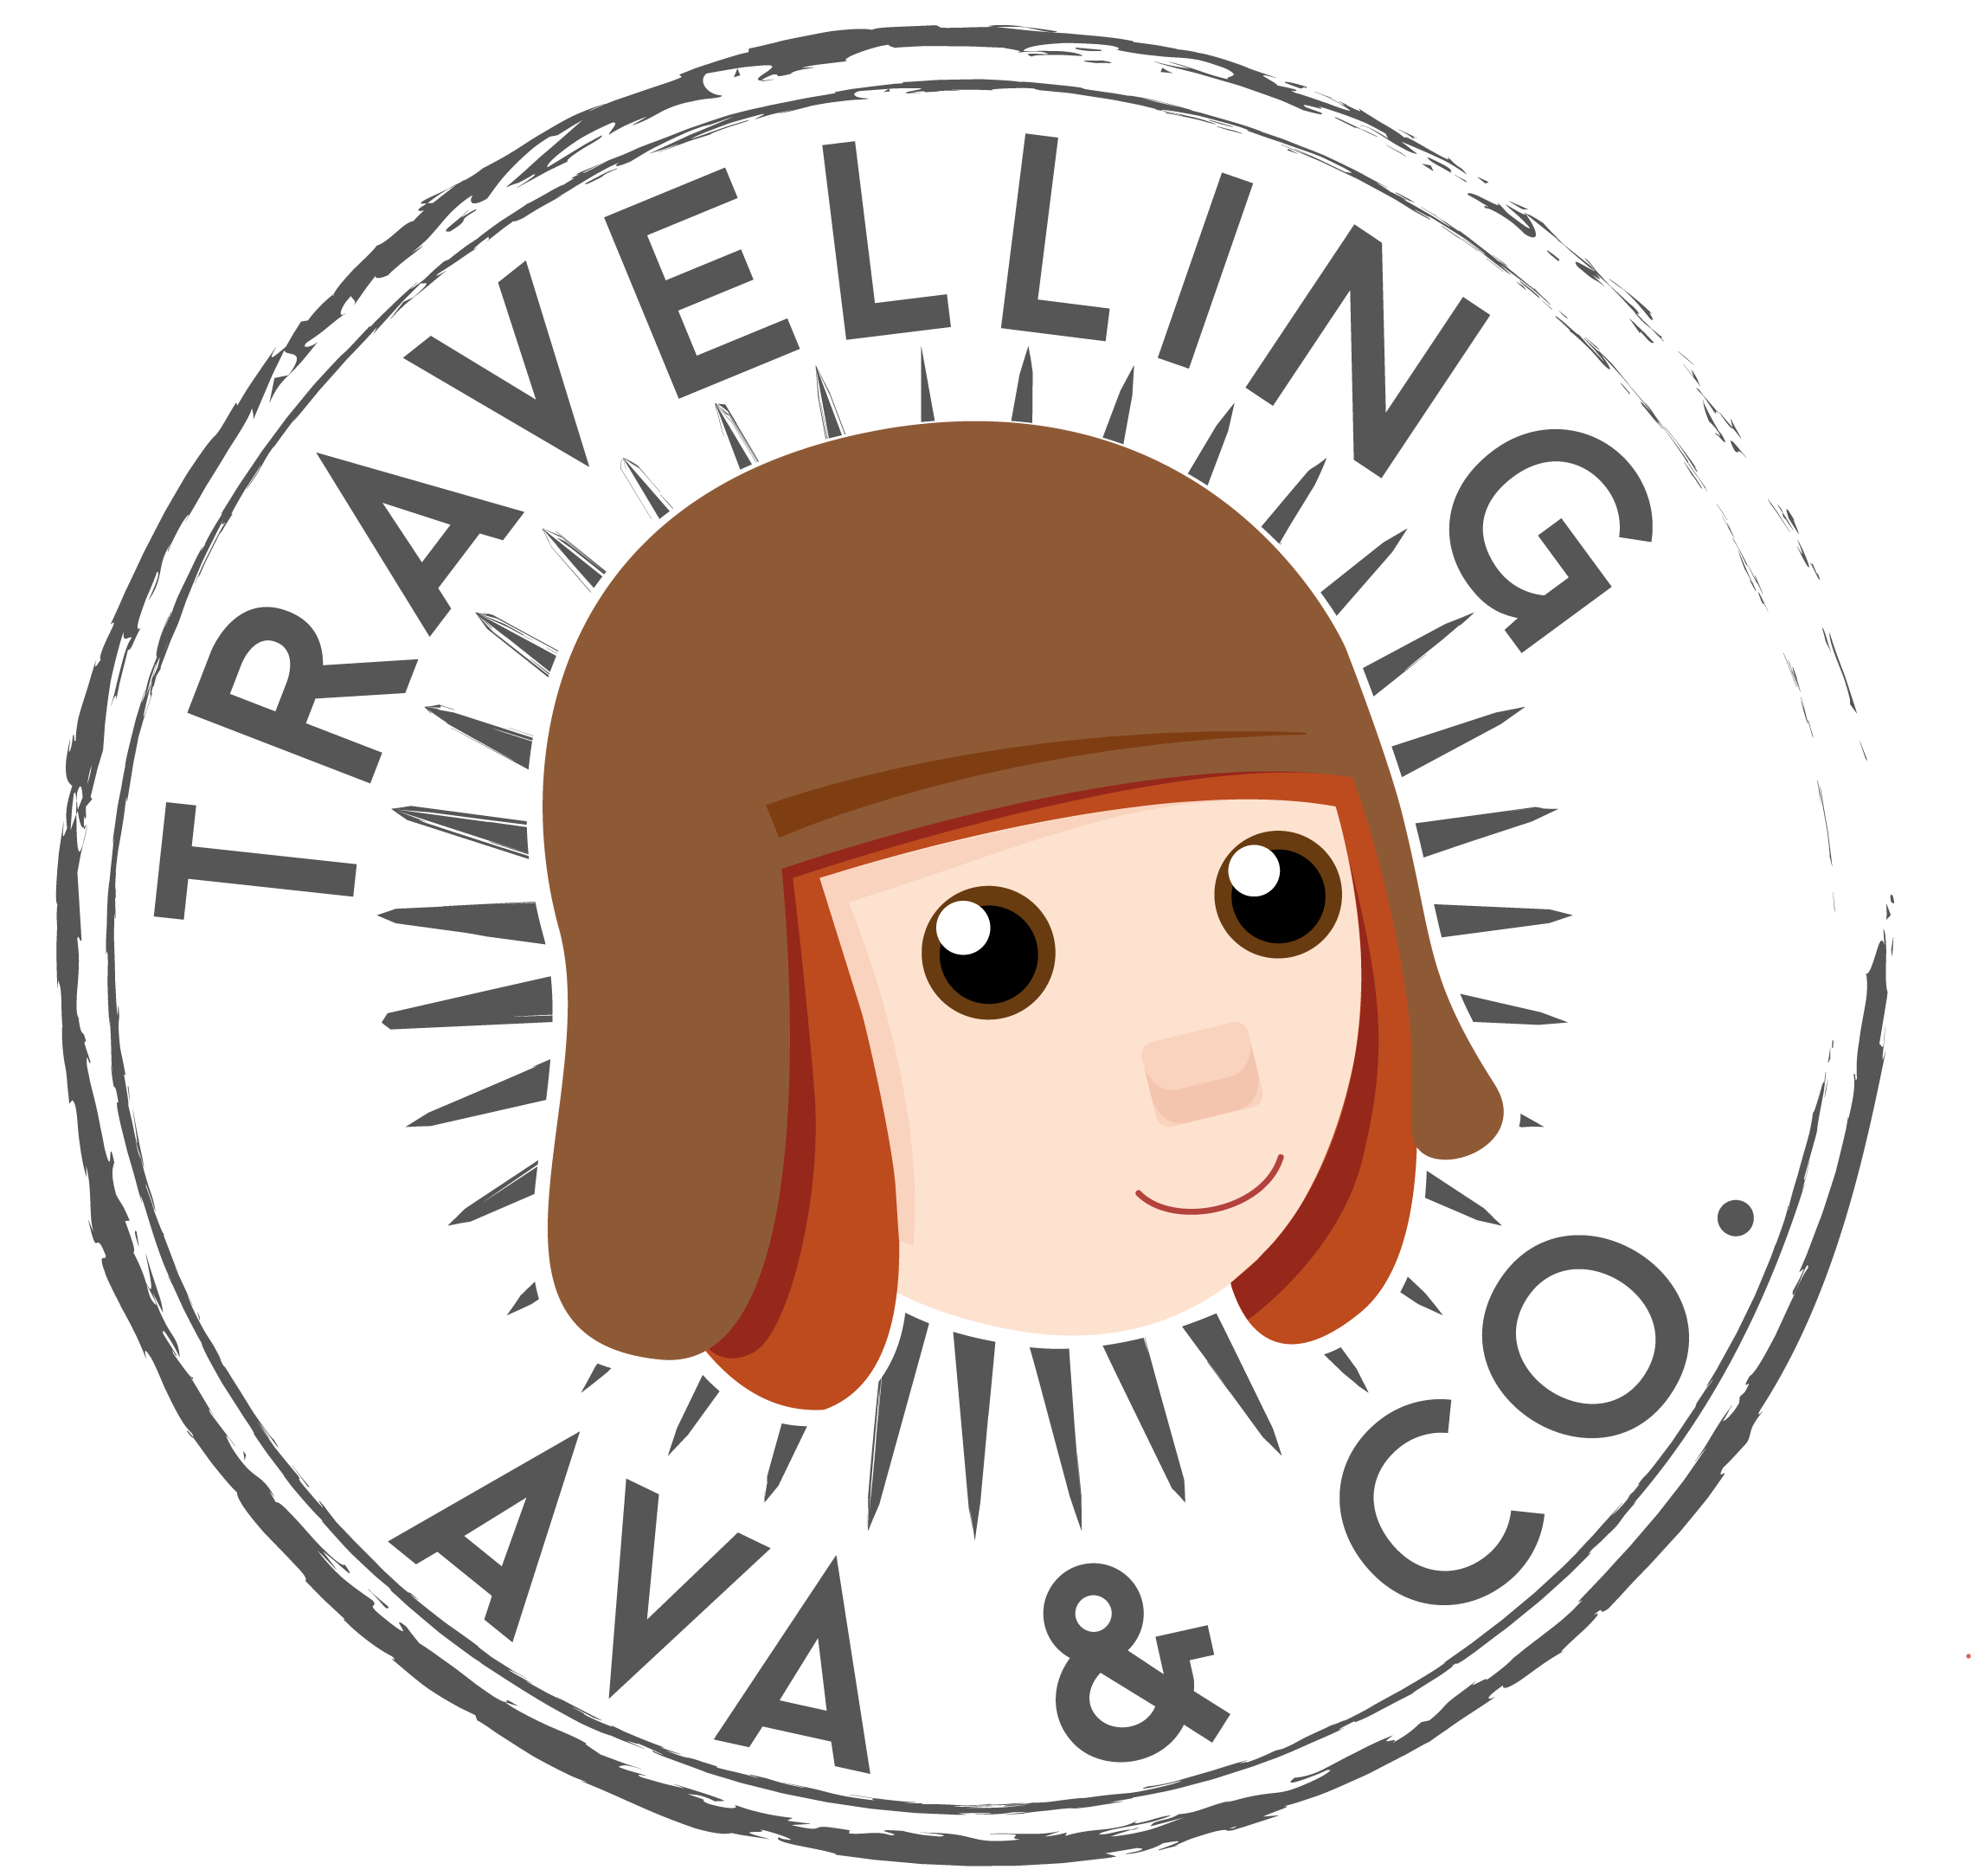 Travelling Ava and Co.